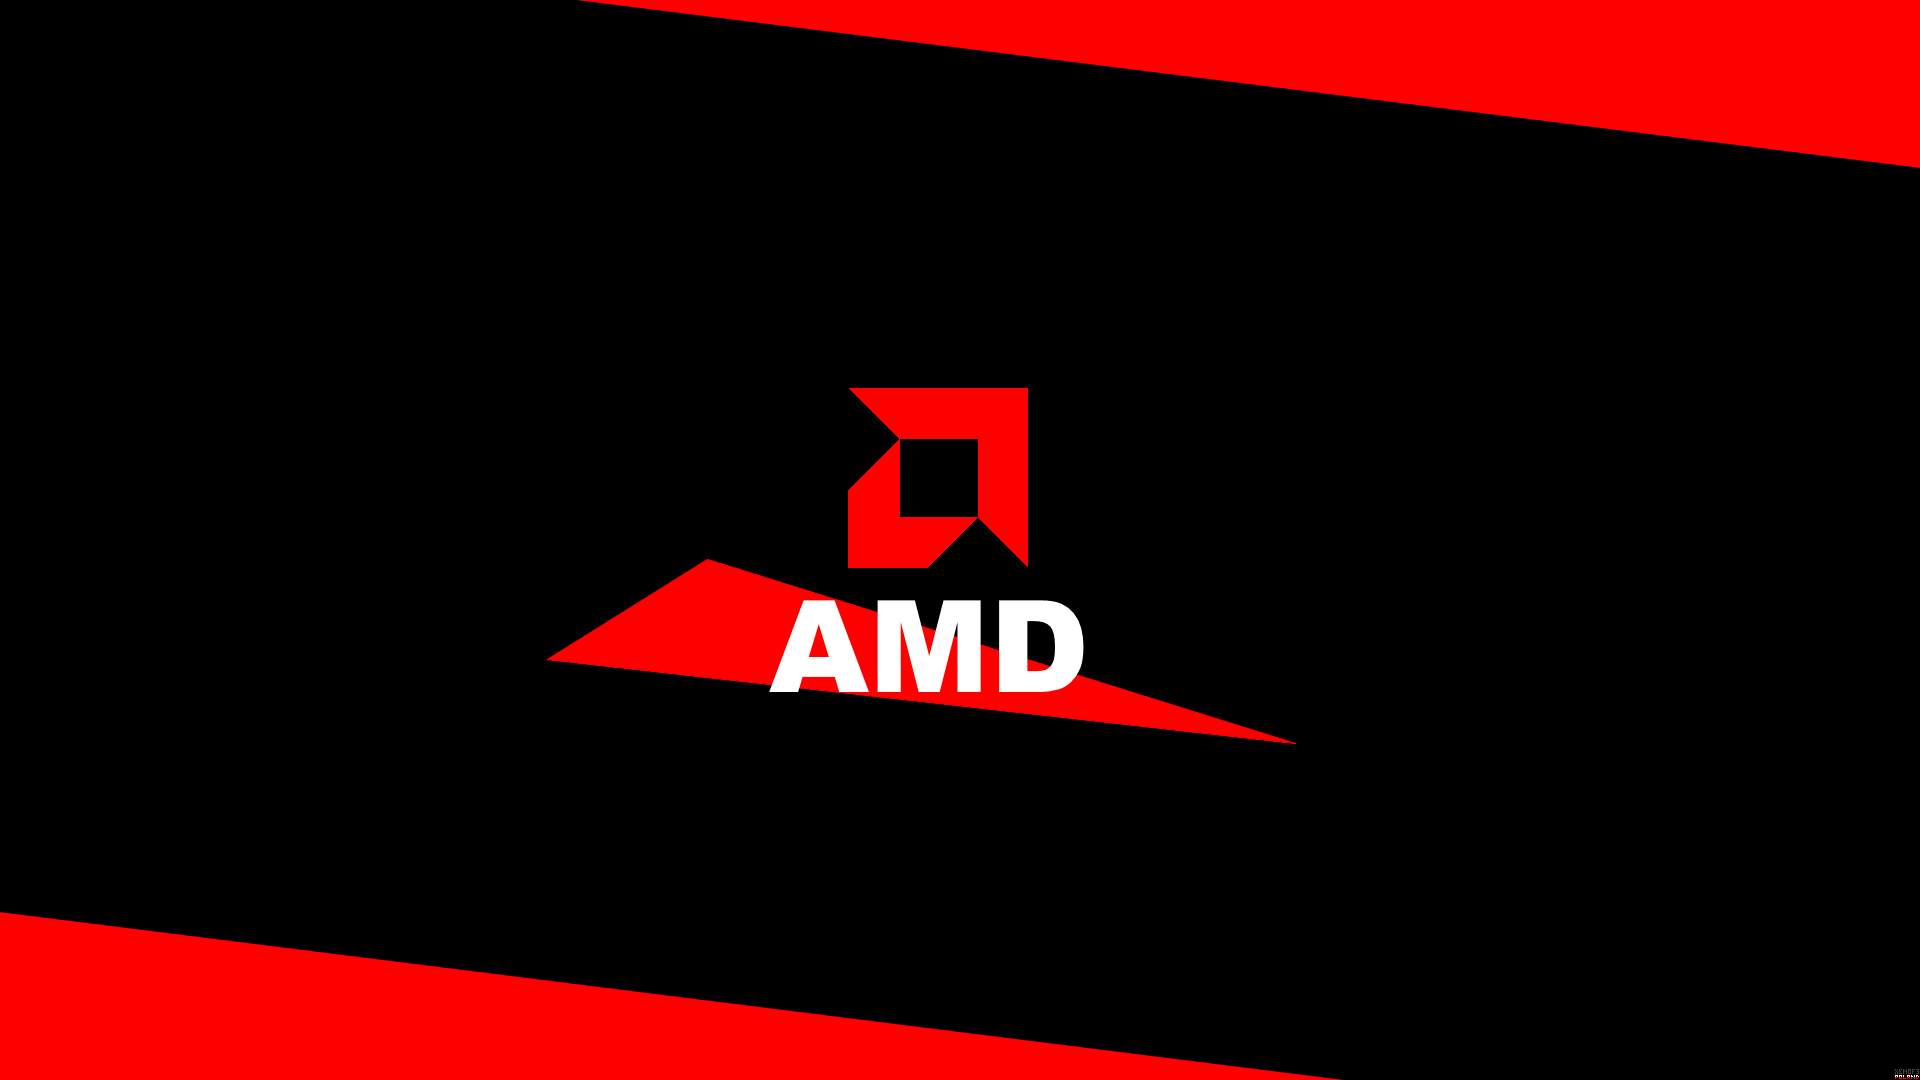 AMD market share grows first time in 4 years